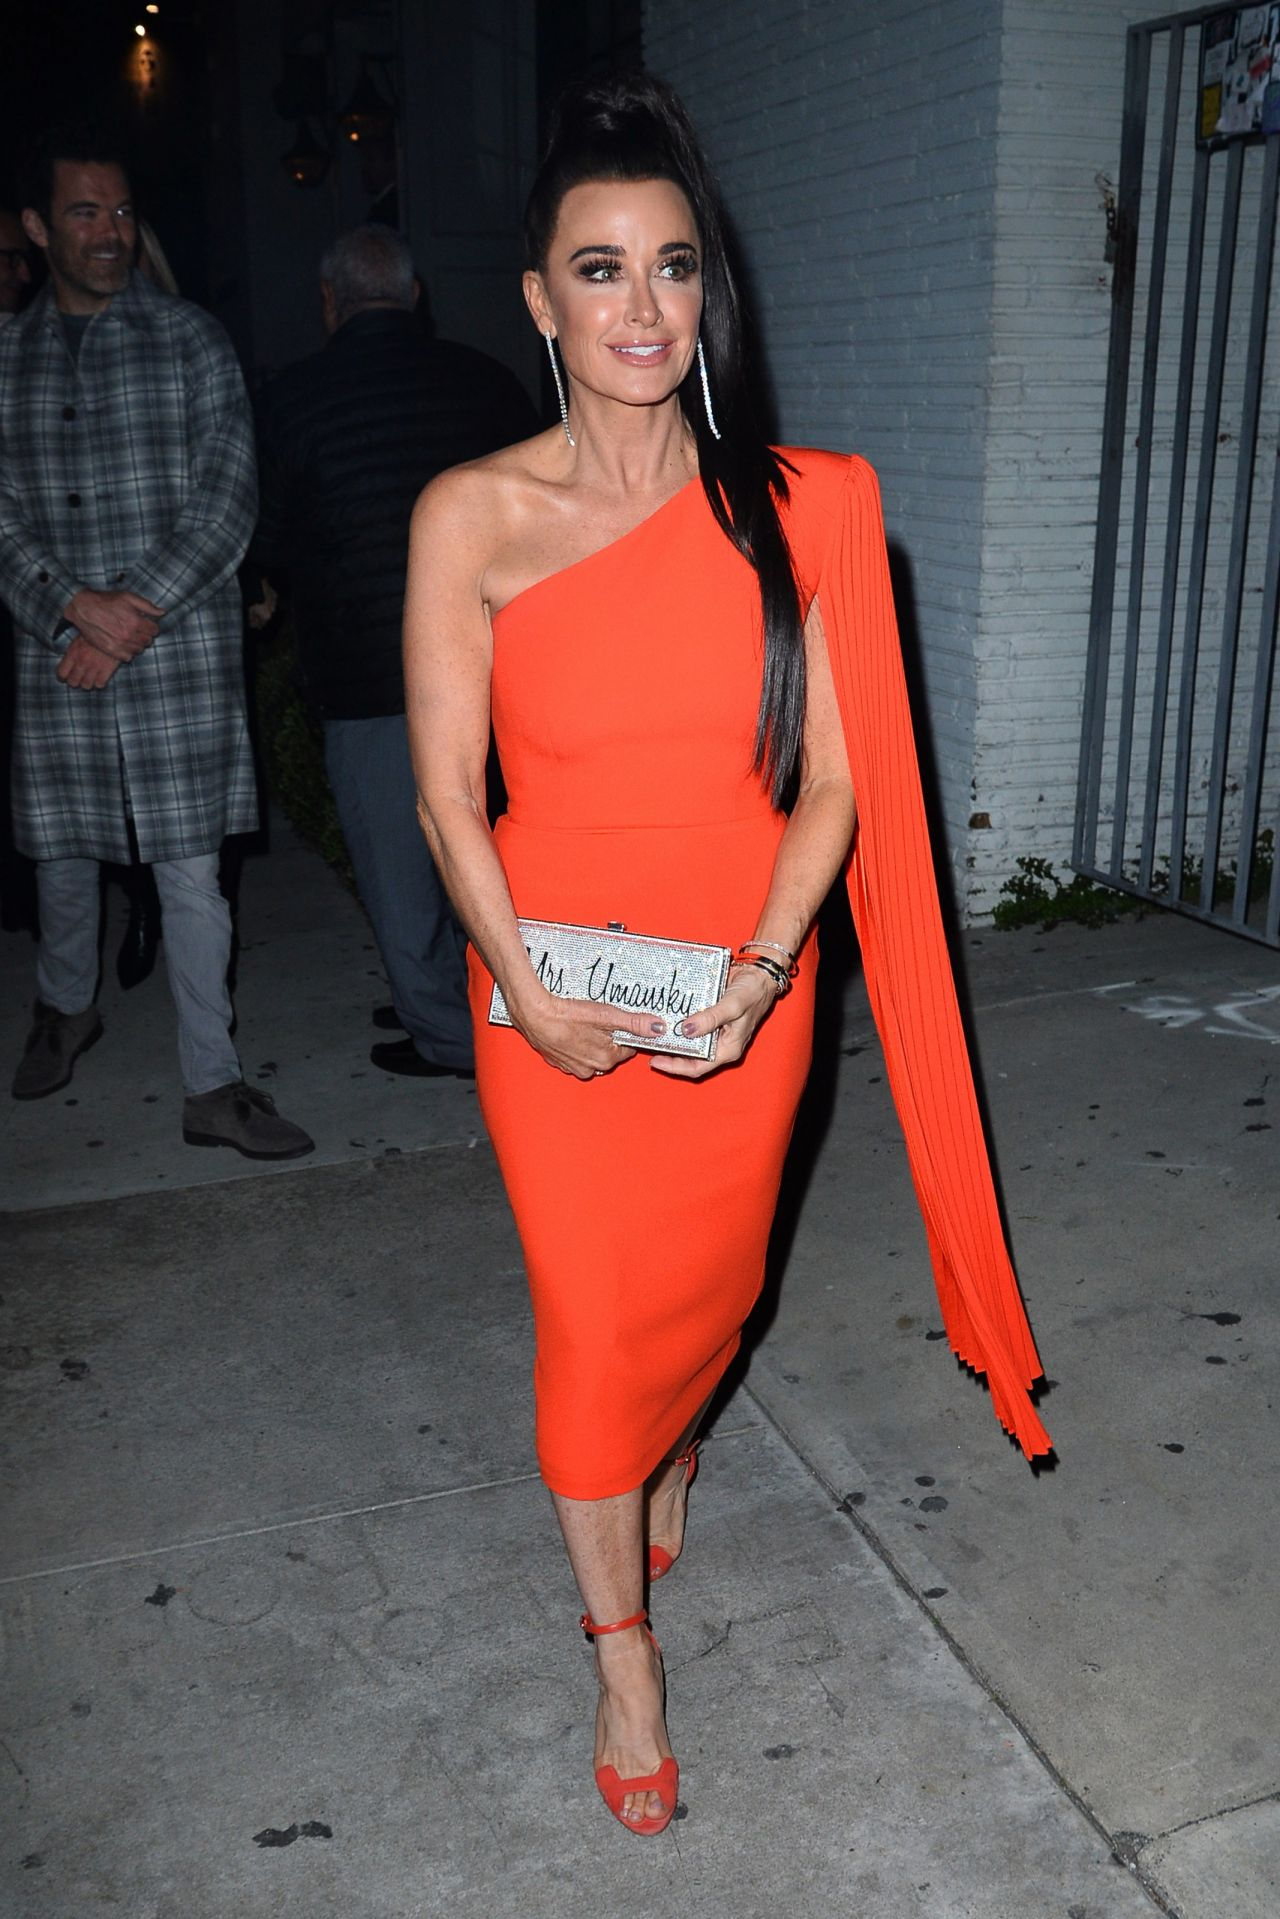 Kyle Richard Arrives For The Real Housewives Of Beverly